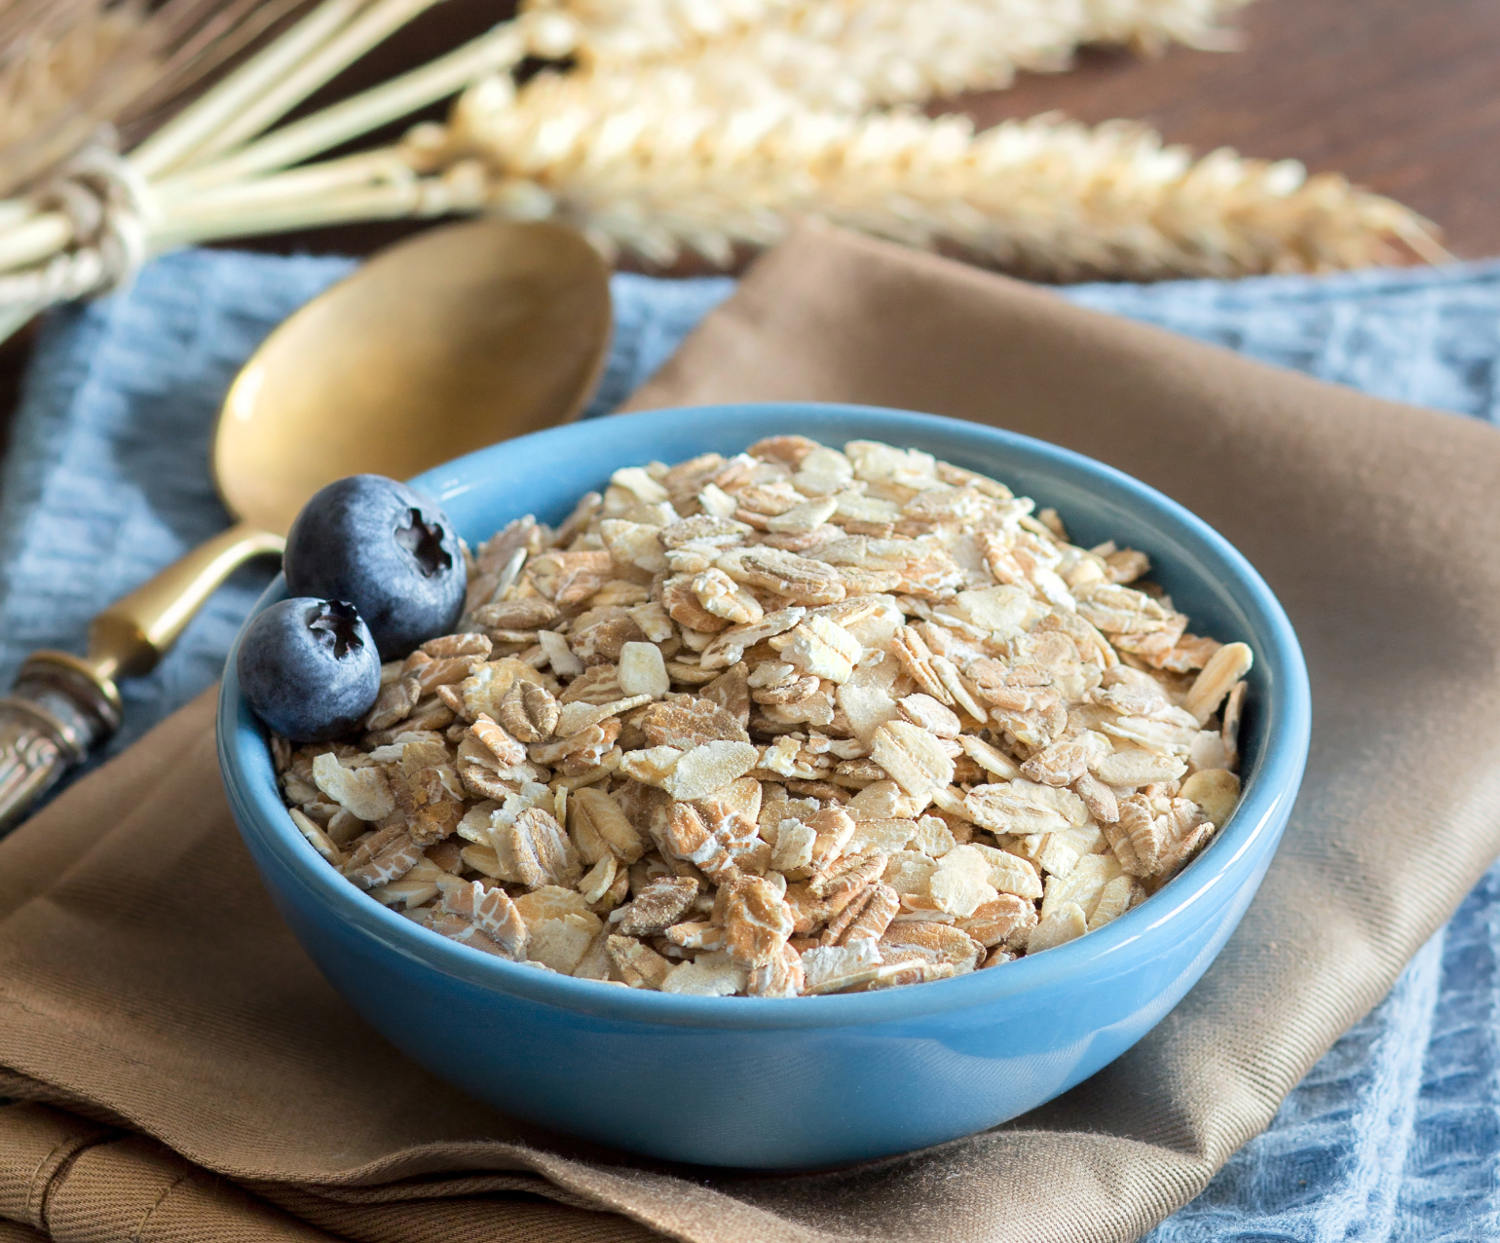 screw_the_average_tips_save_money_food_while_traveling_rolled_whole_oats.jpg